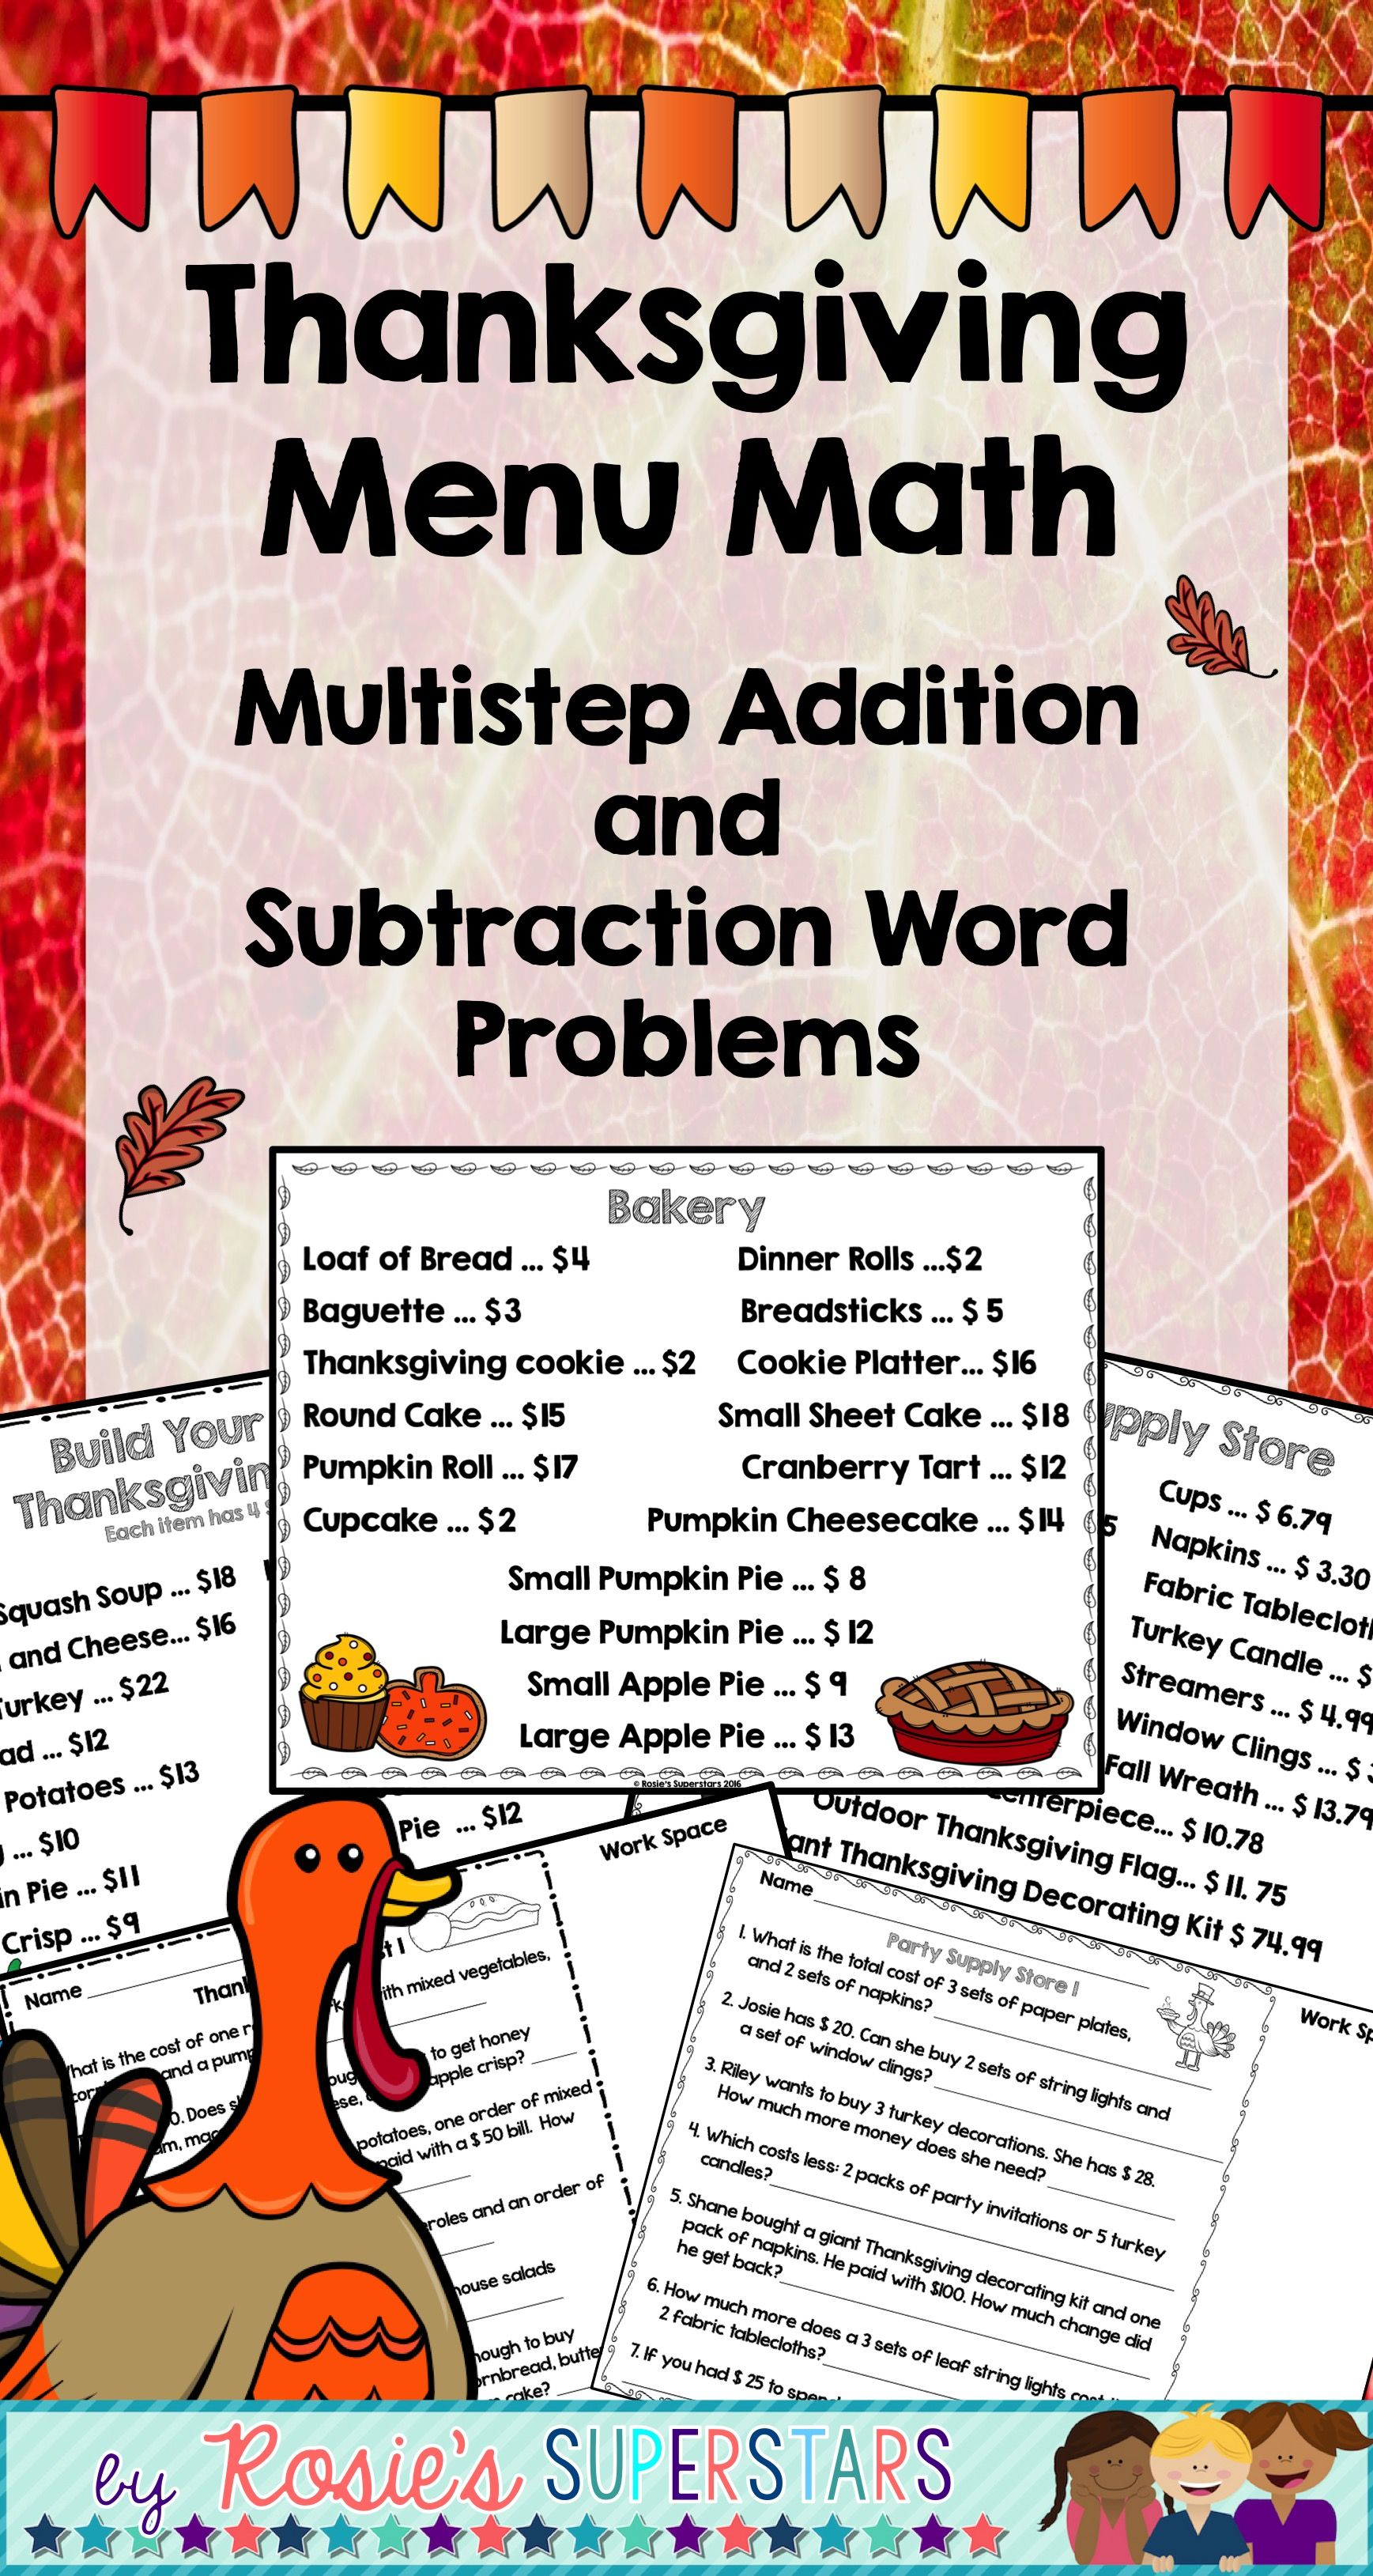 Thanksgiving Menu Math Multistep Addition And Subtraction